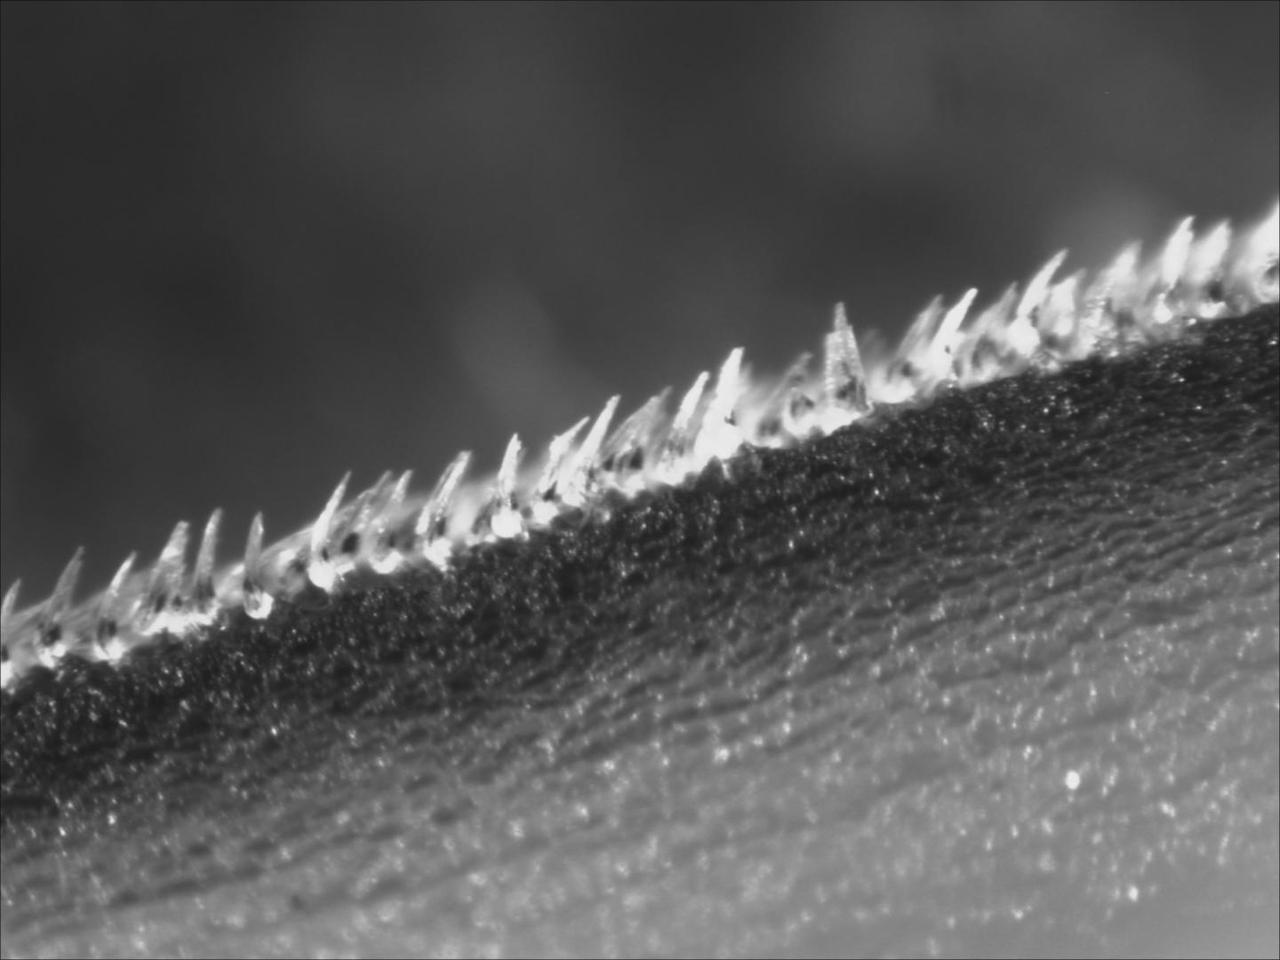 A close-up view of a front row of the denticles, from a shortfin mako's flank behind its gills – they've been manually bristled for the photograph